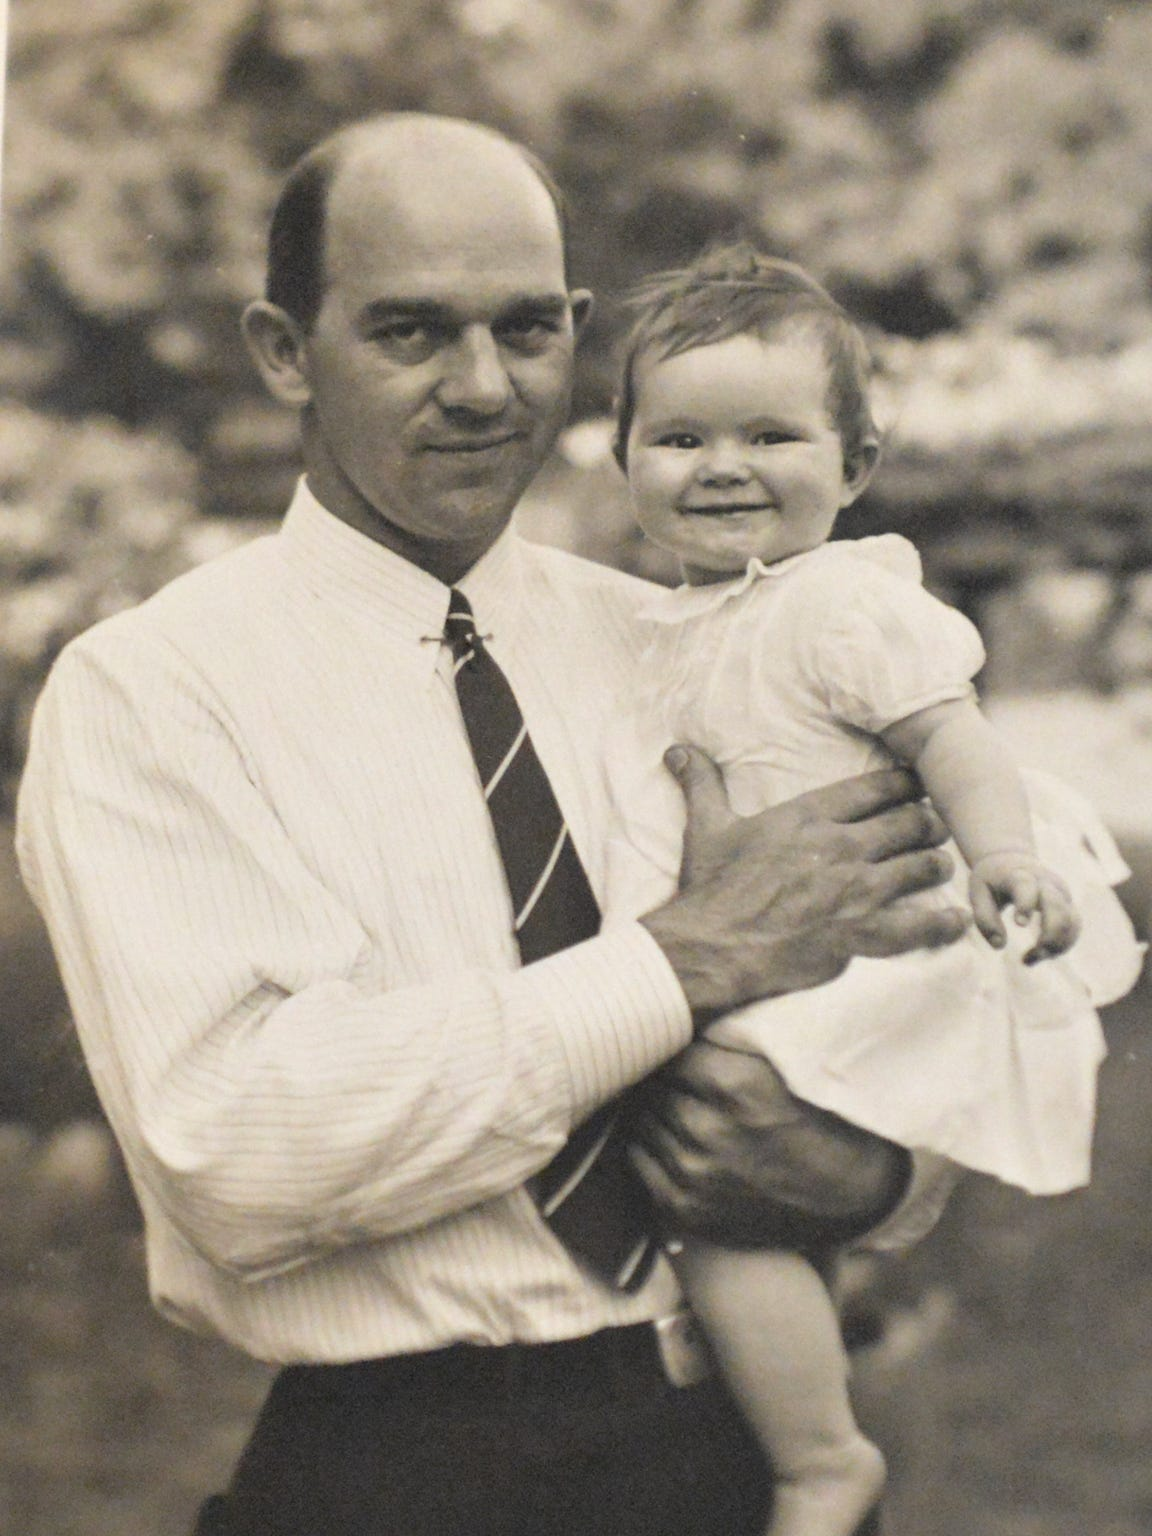 A photograph of Thomas D. Howie with his daughter Sally before the start of World War II.